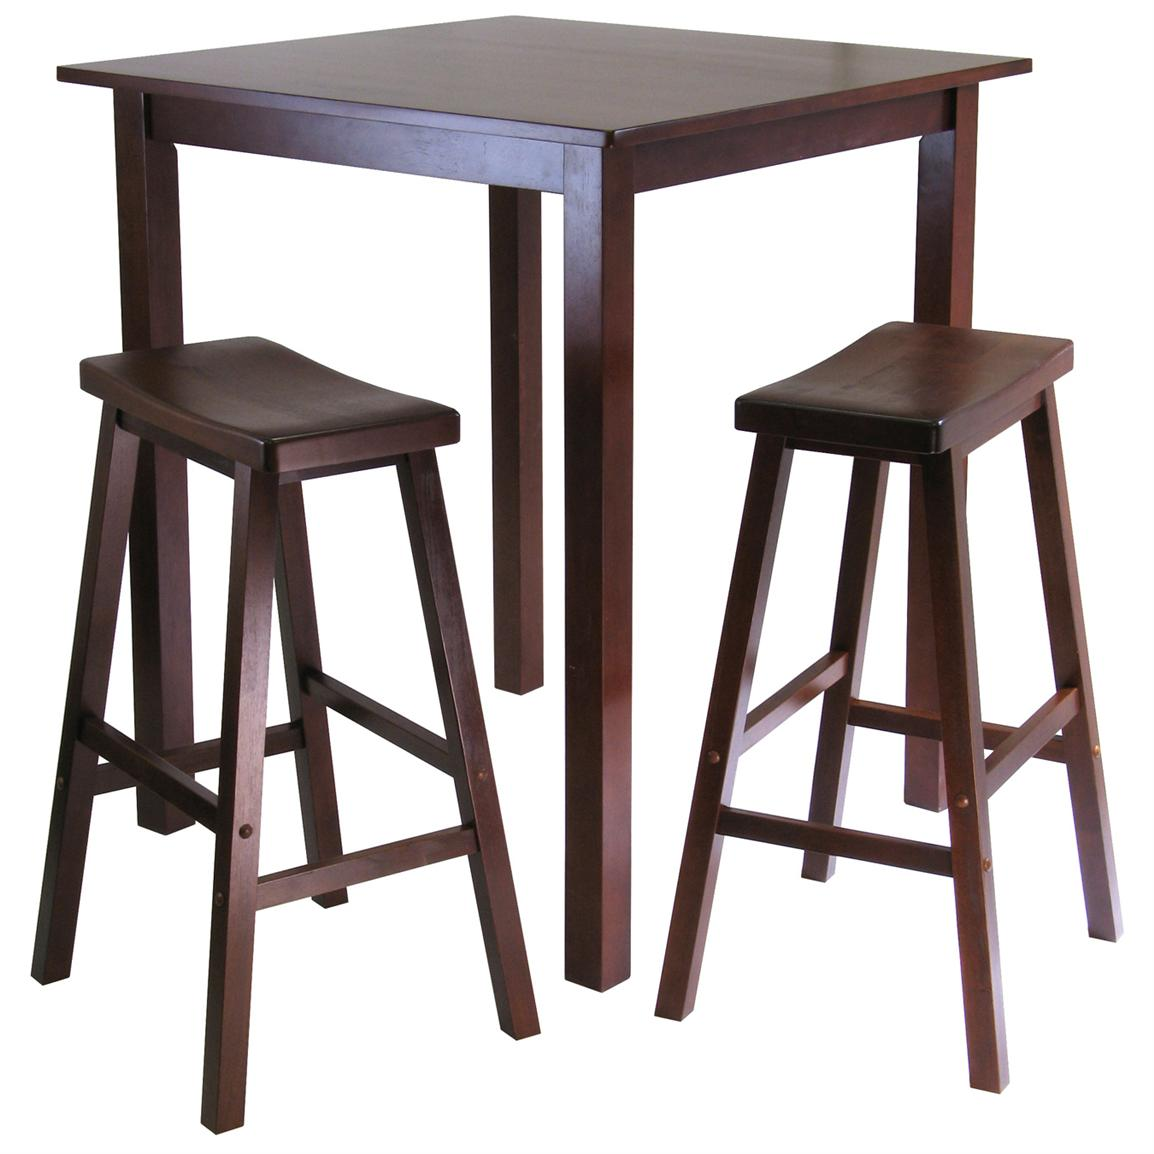 Bar Stools And Table Set Pub Tables And Stools Homesfeed